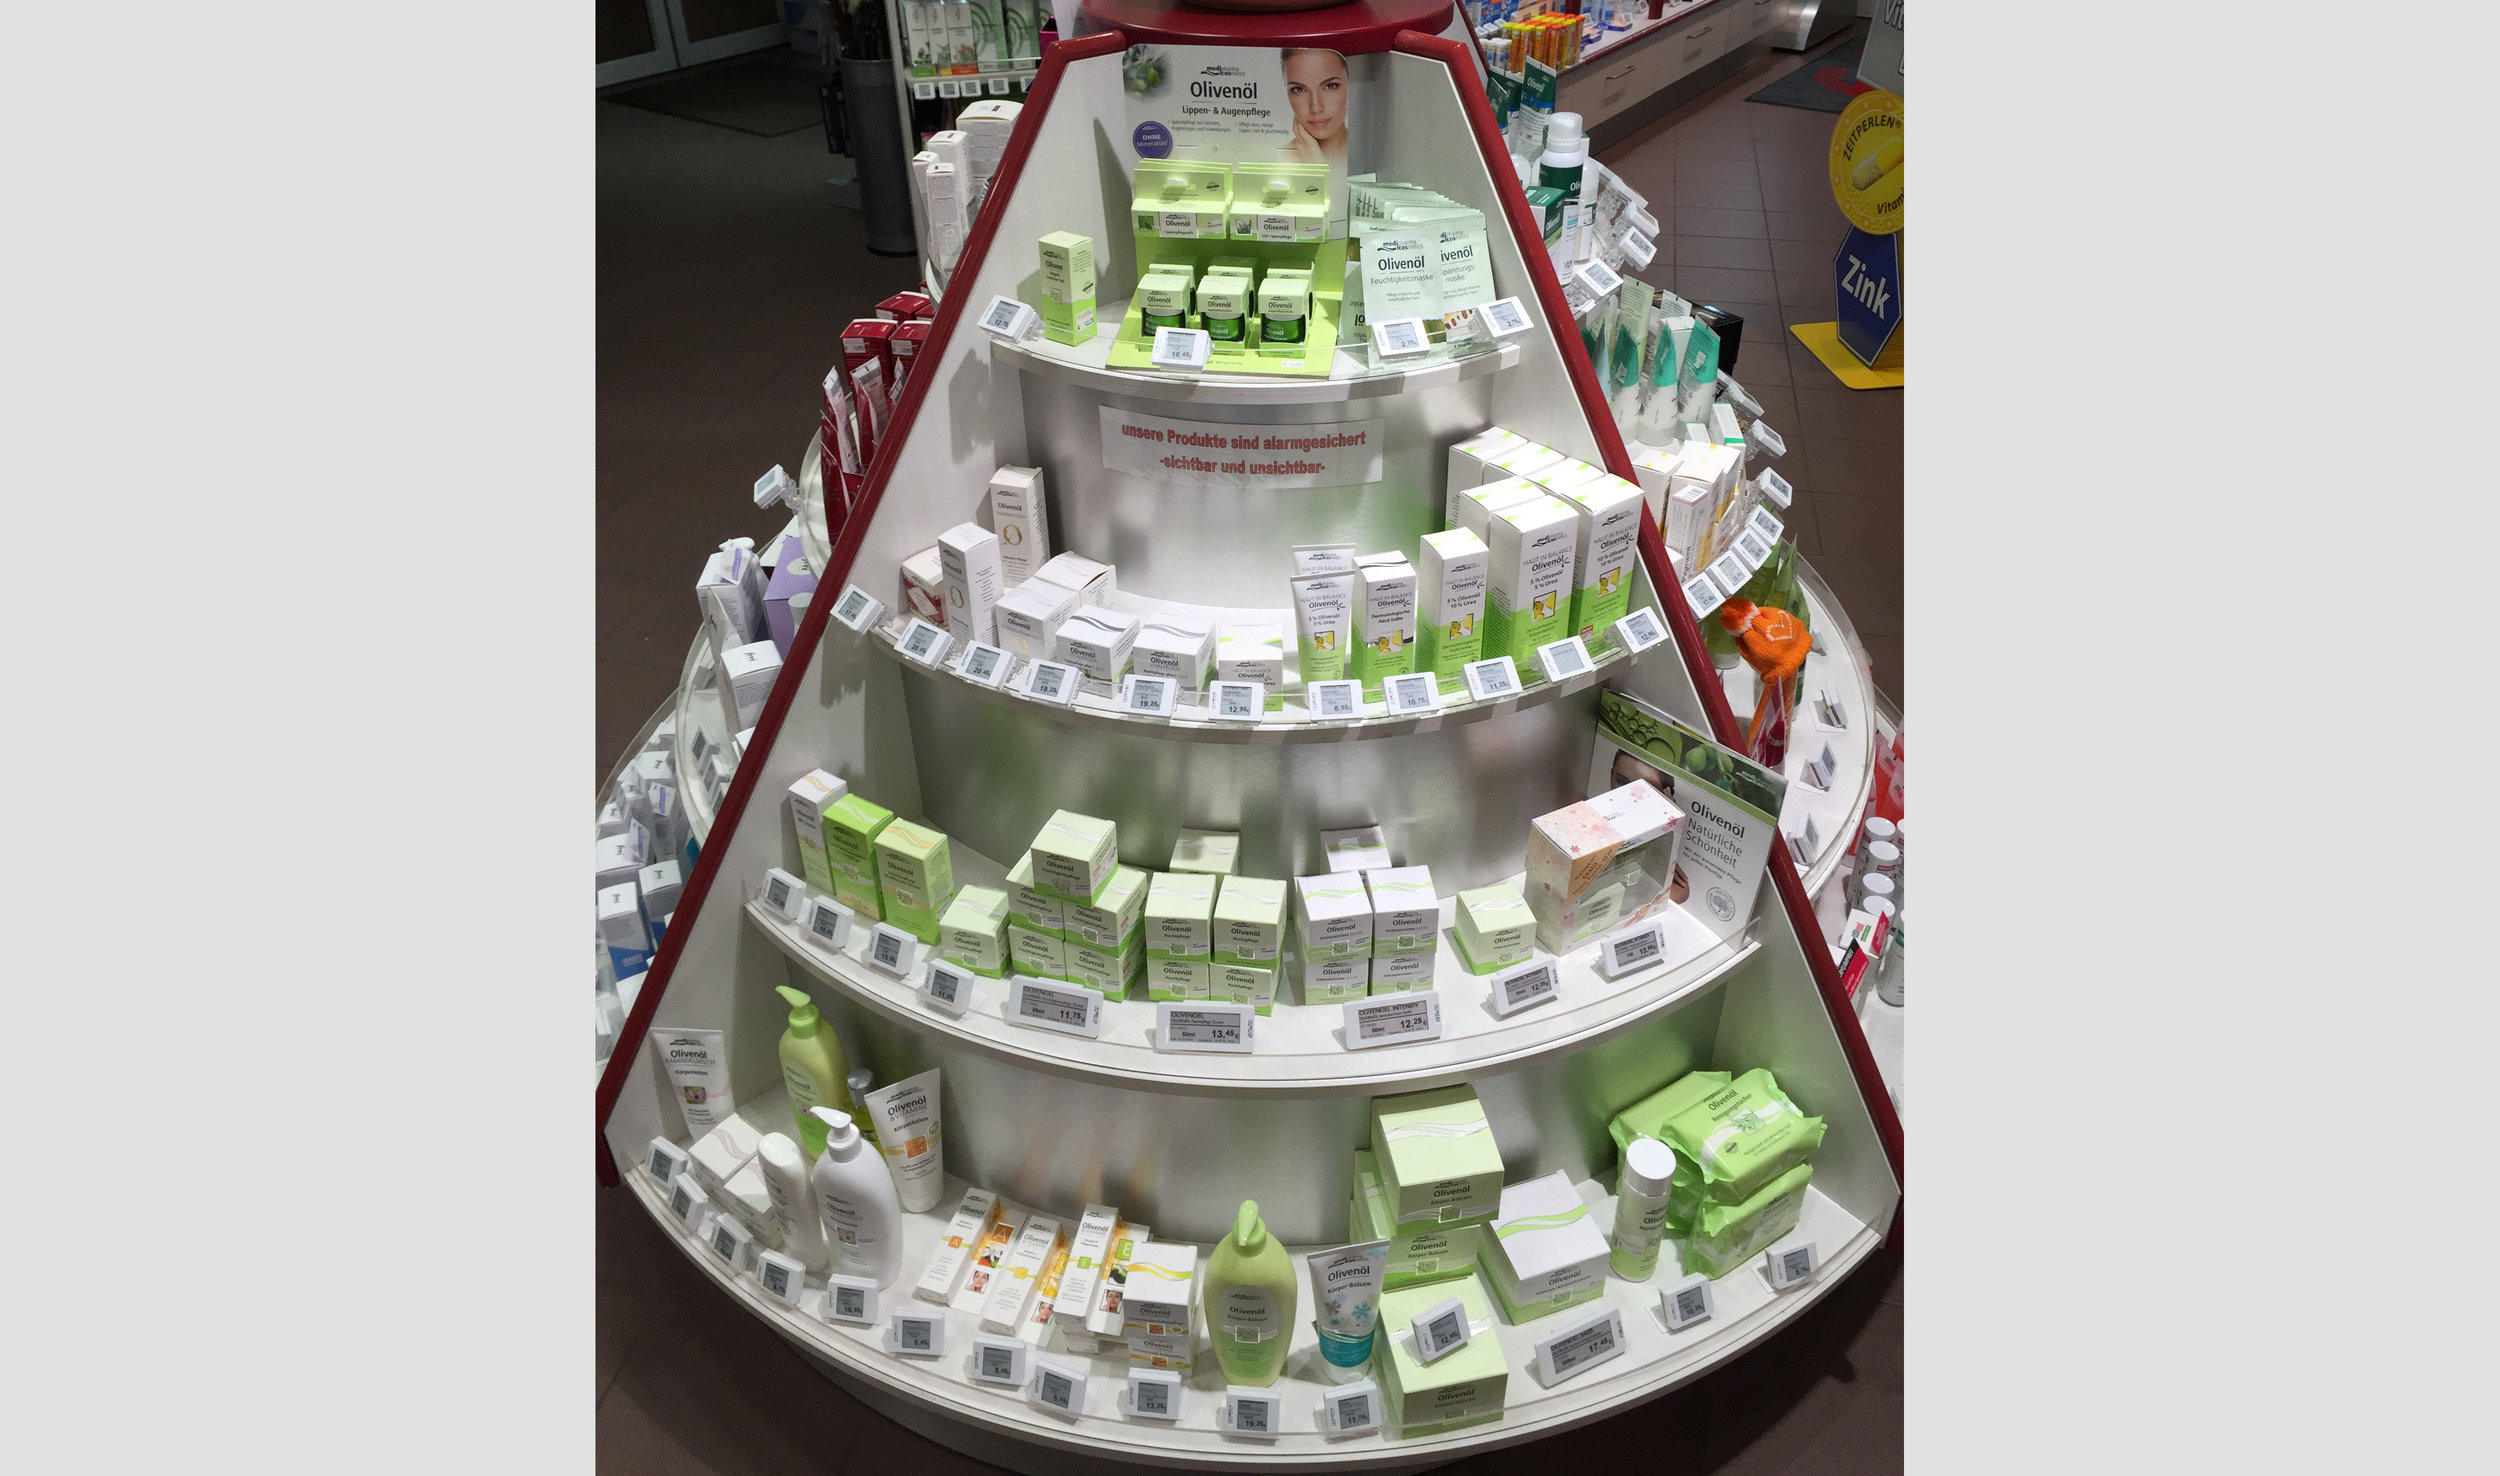 Digital pricing labels are fixed to a circular Pharmacy product display